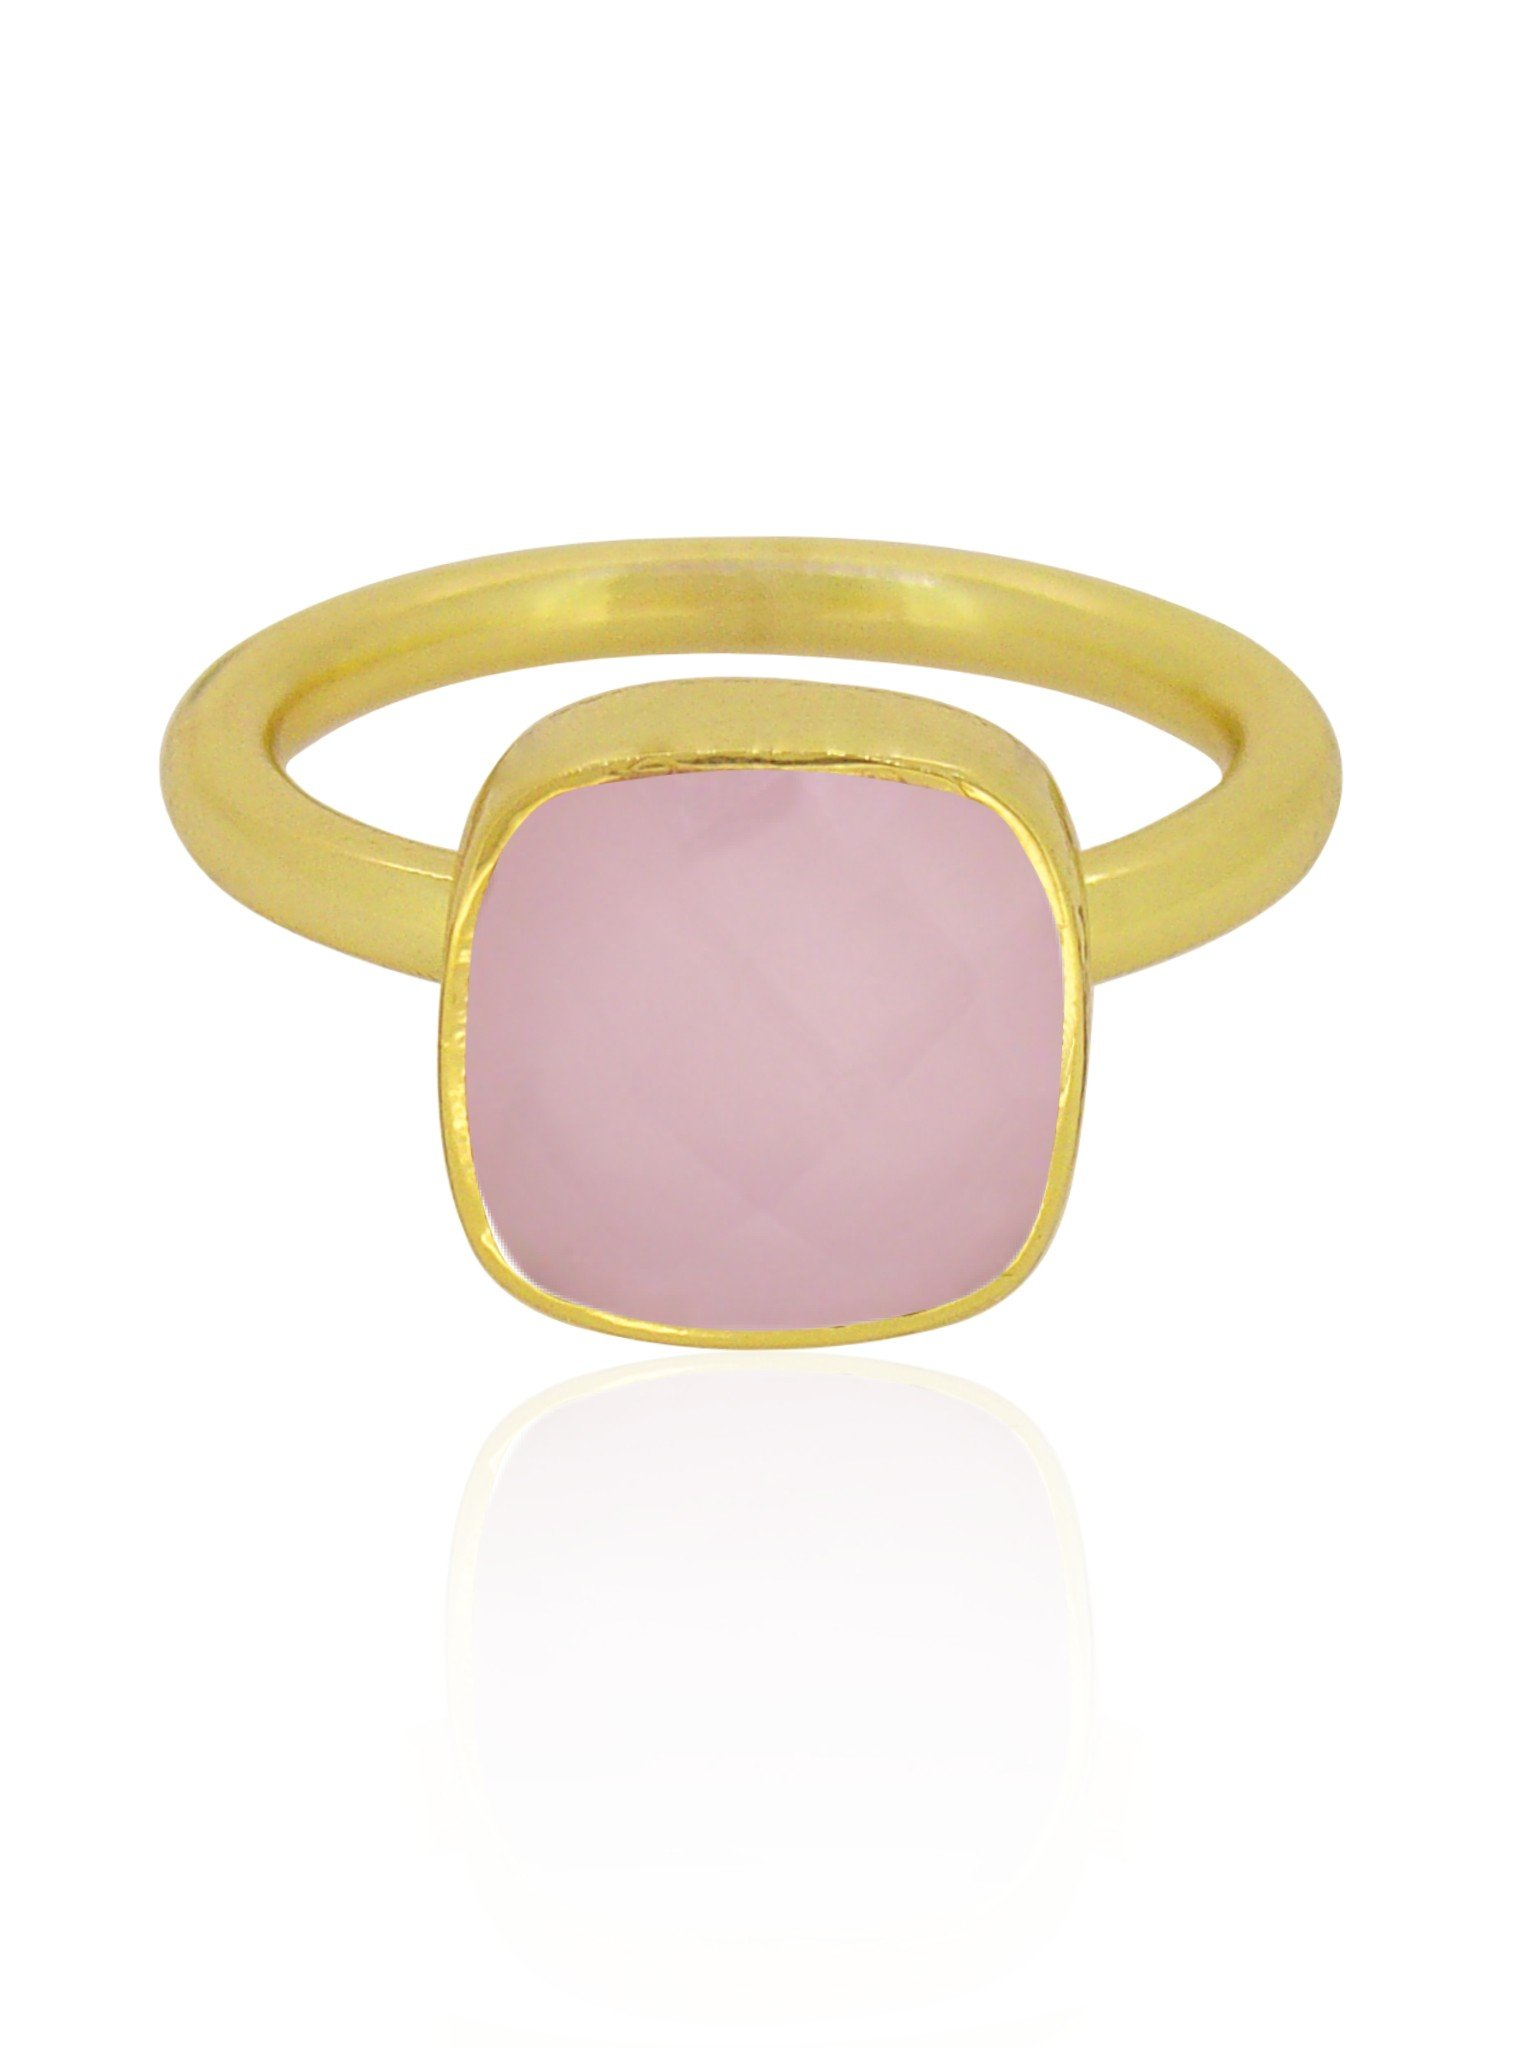 Indie Rose Quartz Gemstone Ring in Gold